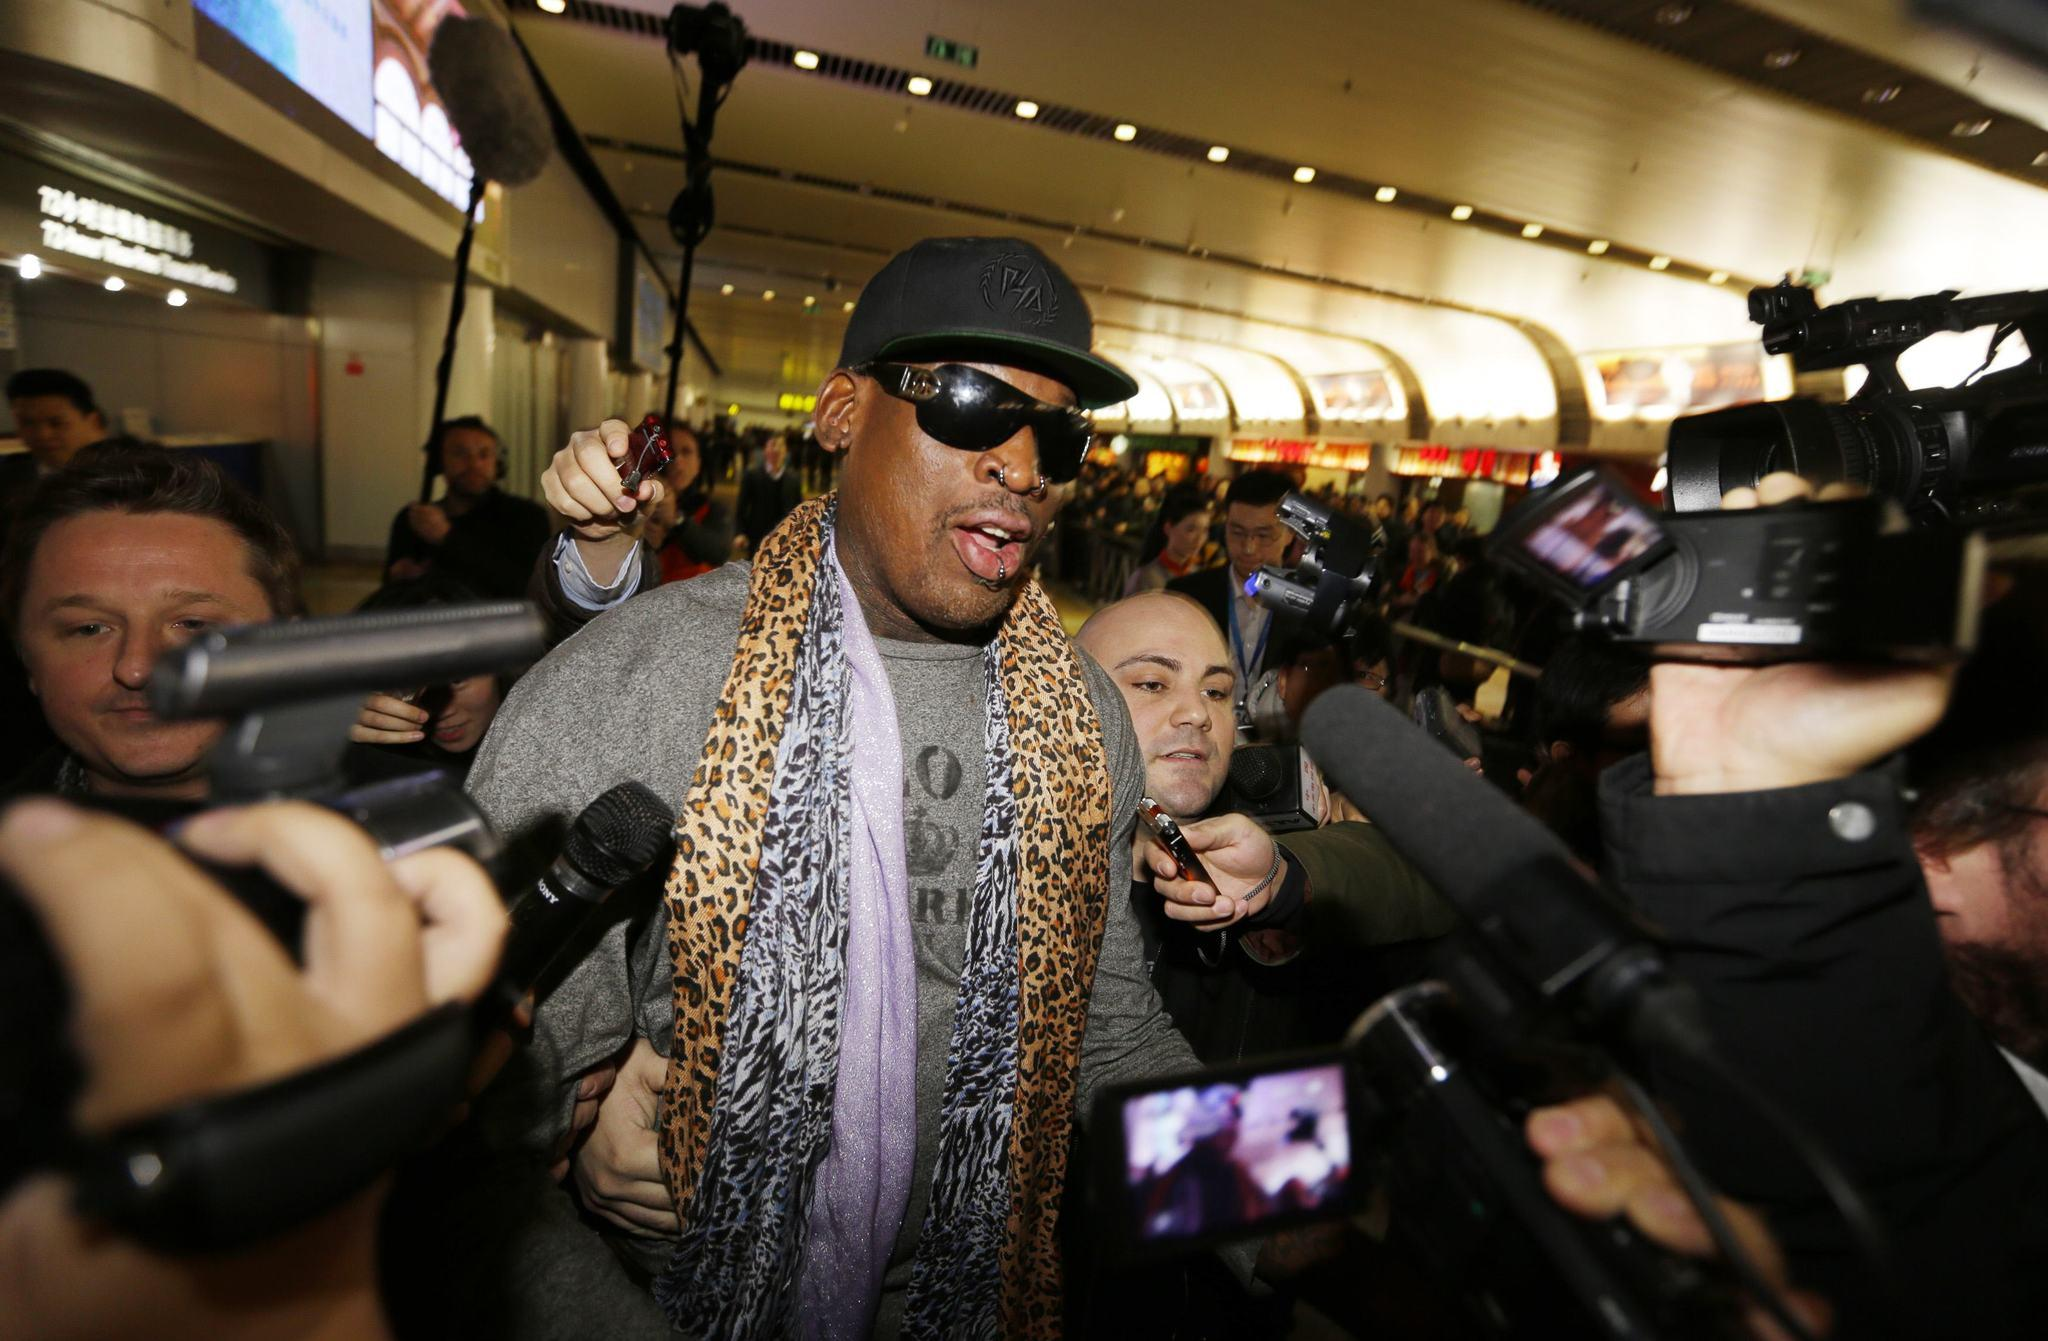 Former NBA basketball player Dennis Rodman speaks to the media after returning from his trip to North Korea at Beijing airport on December 23.